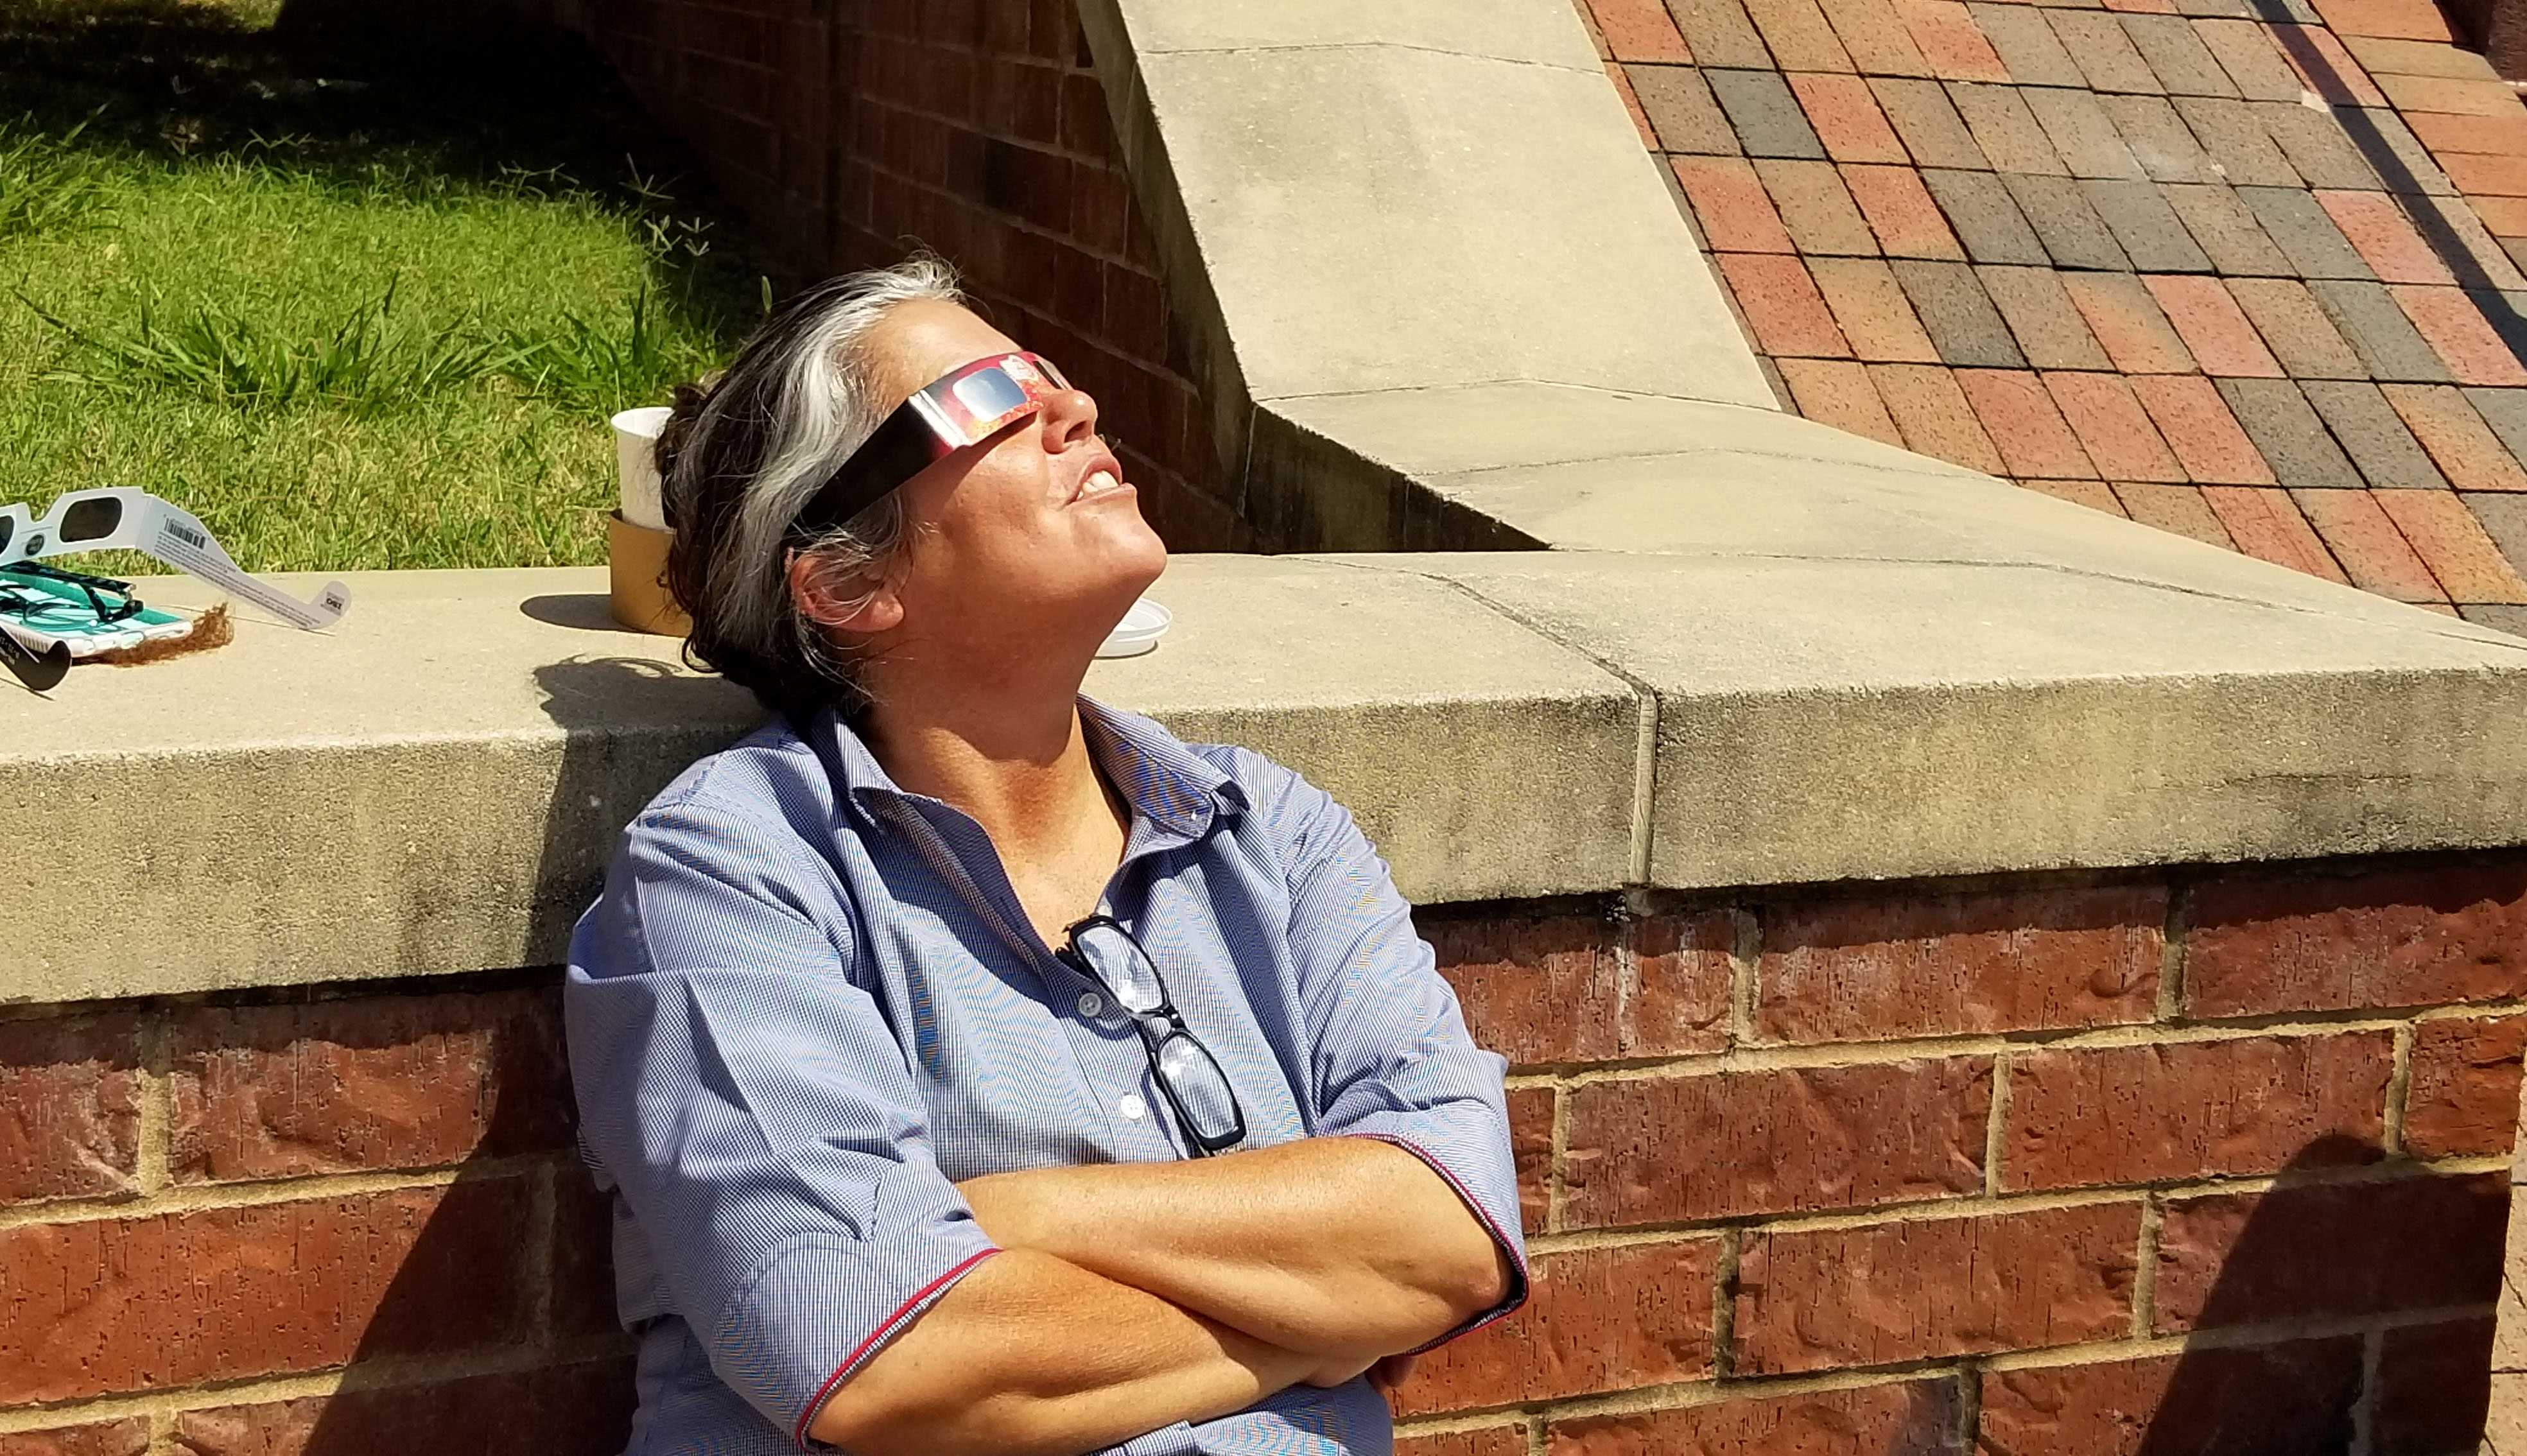 Angie Siebert, general manager at the Lindenwood campus Chick-fil-A, looks up at the partial solar eclipse that occurred over Missouri on Monday. Photo by Michelle Sproat.